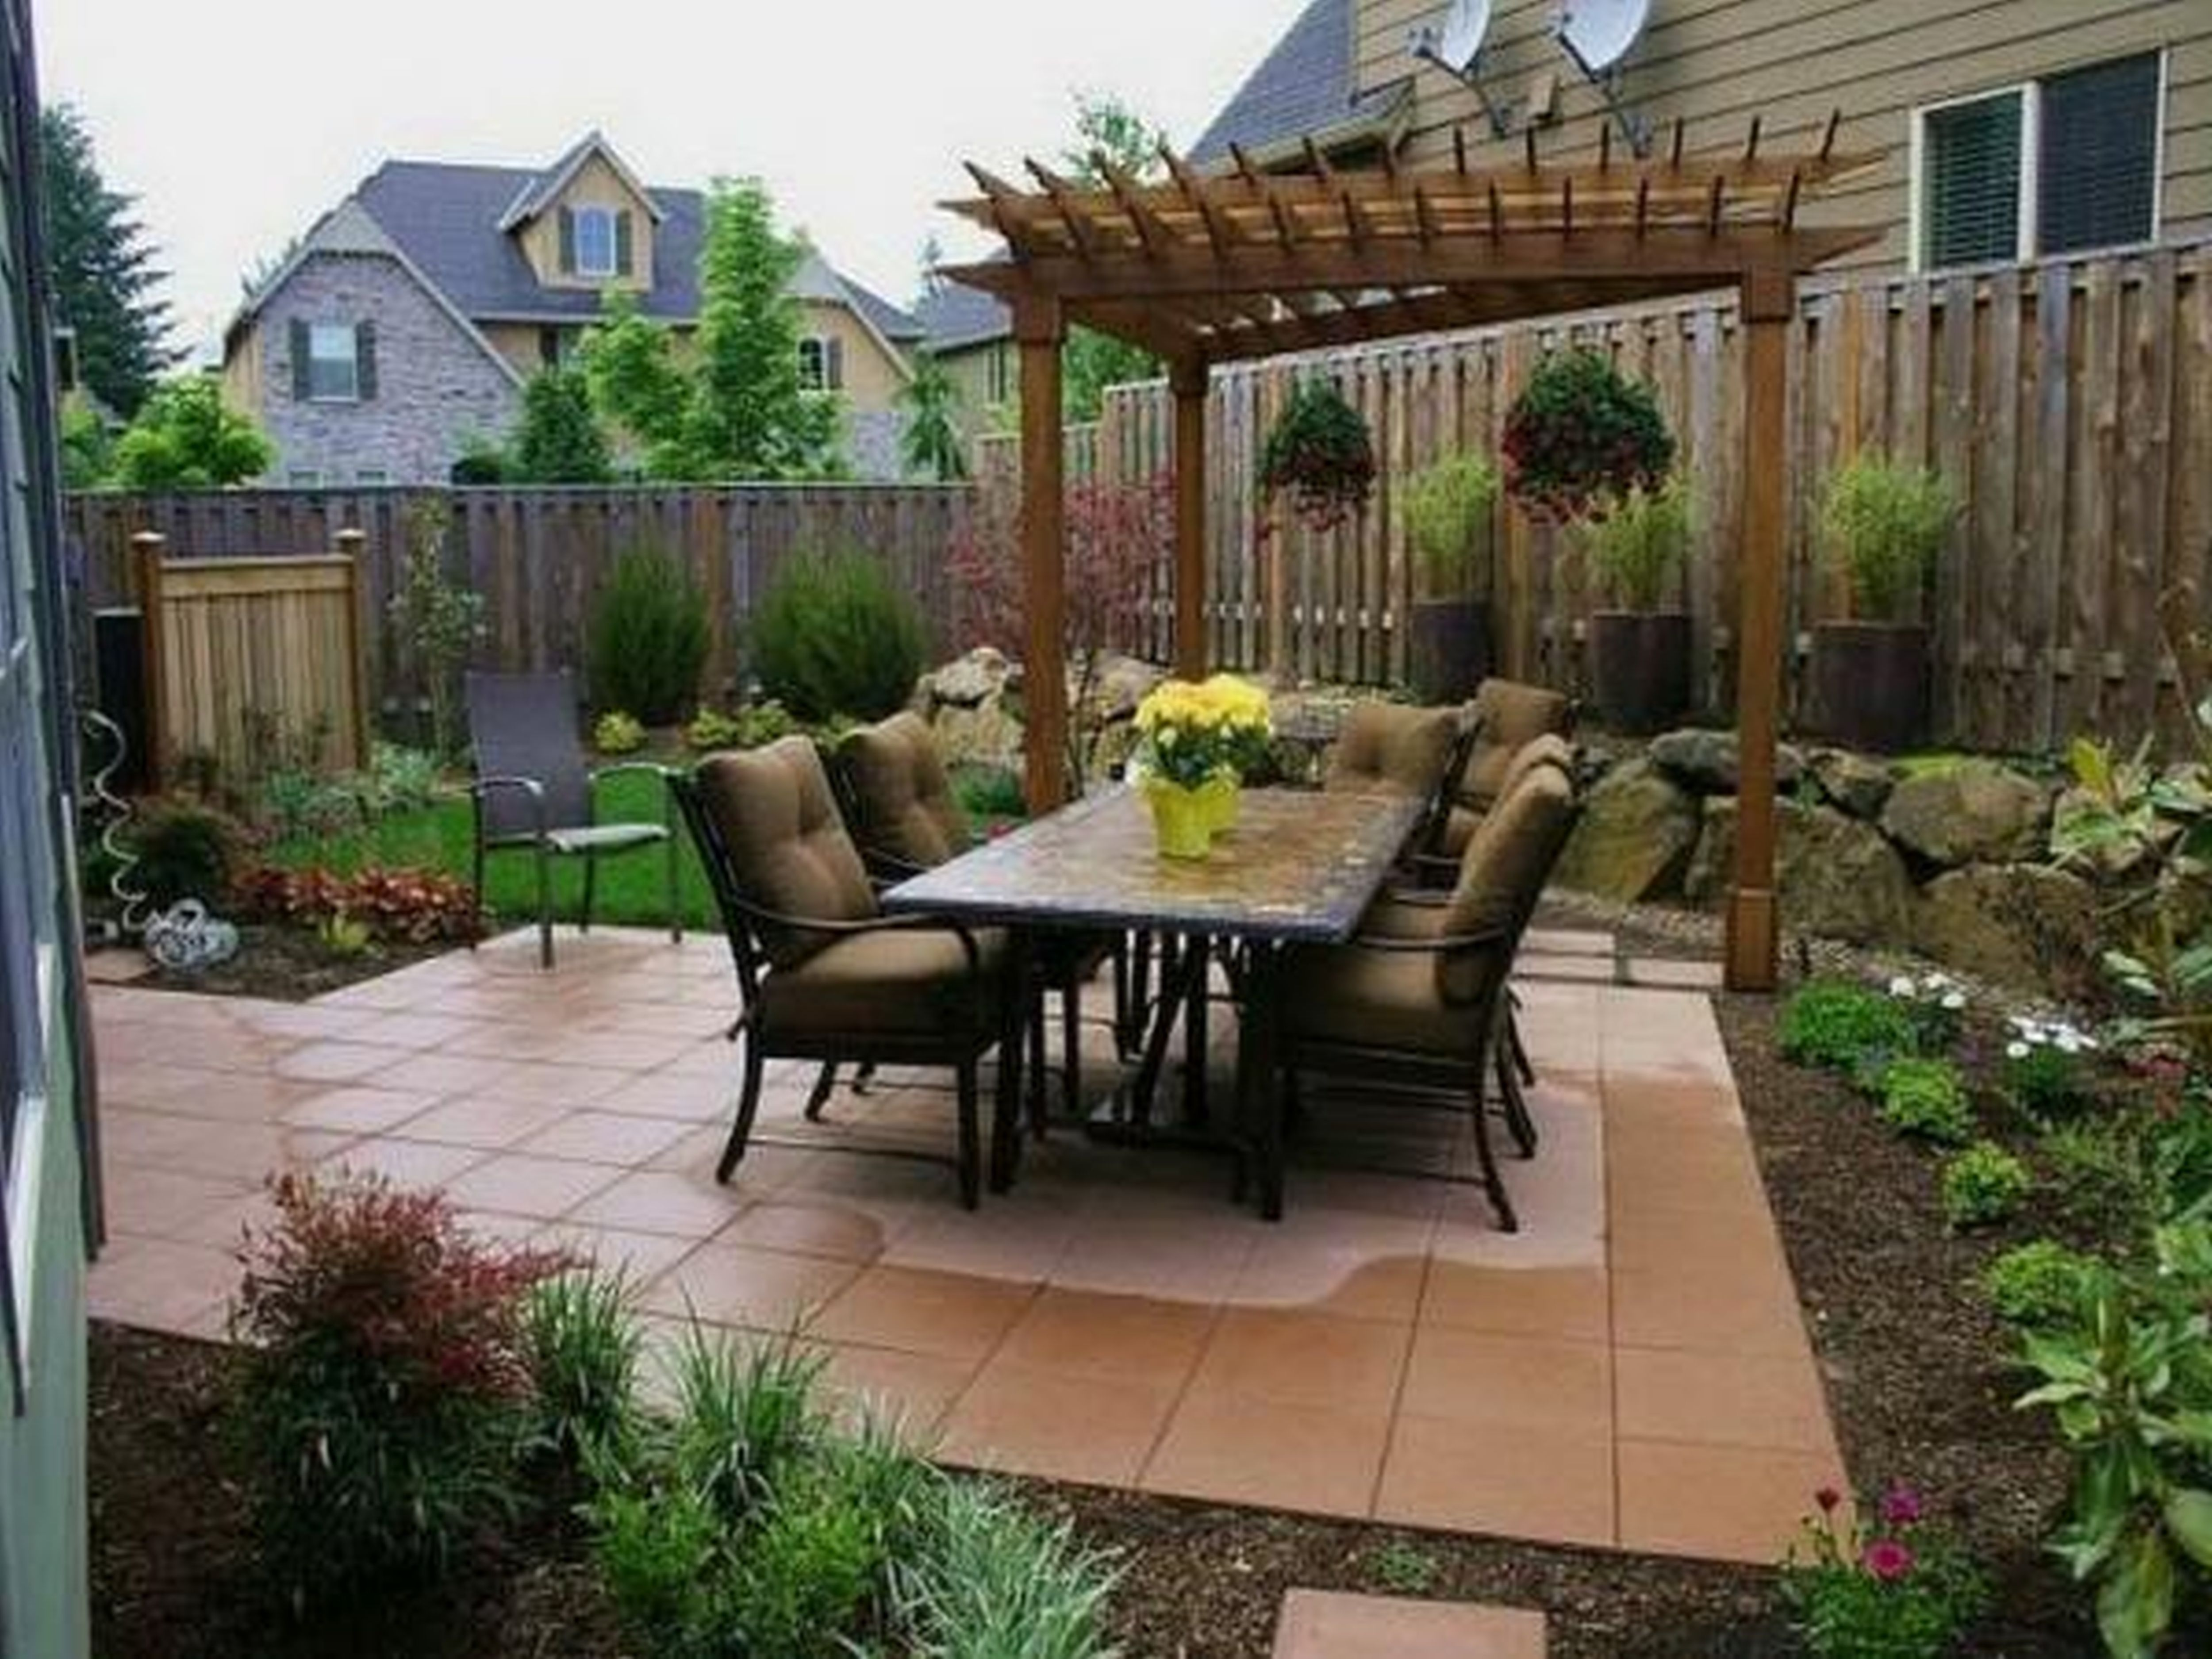 Adorable landscaping ideas for small backyards character engaging also